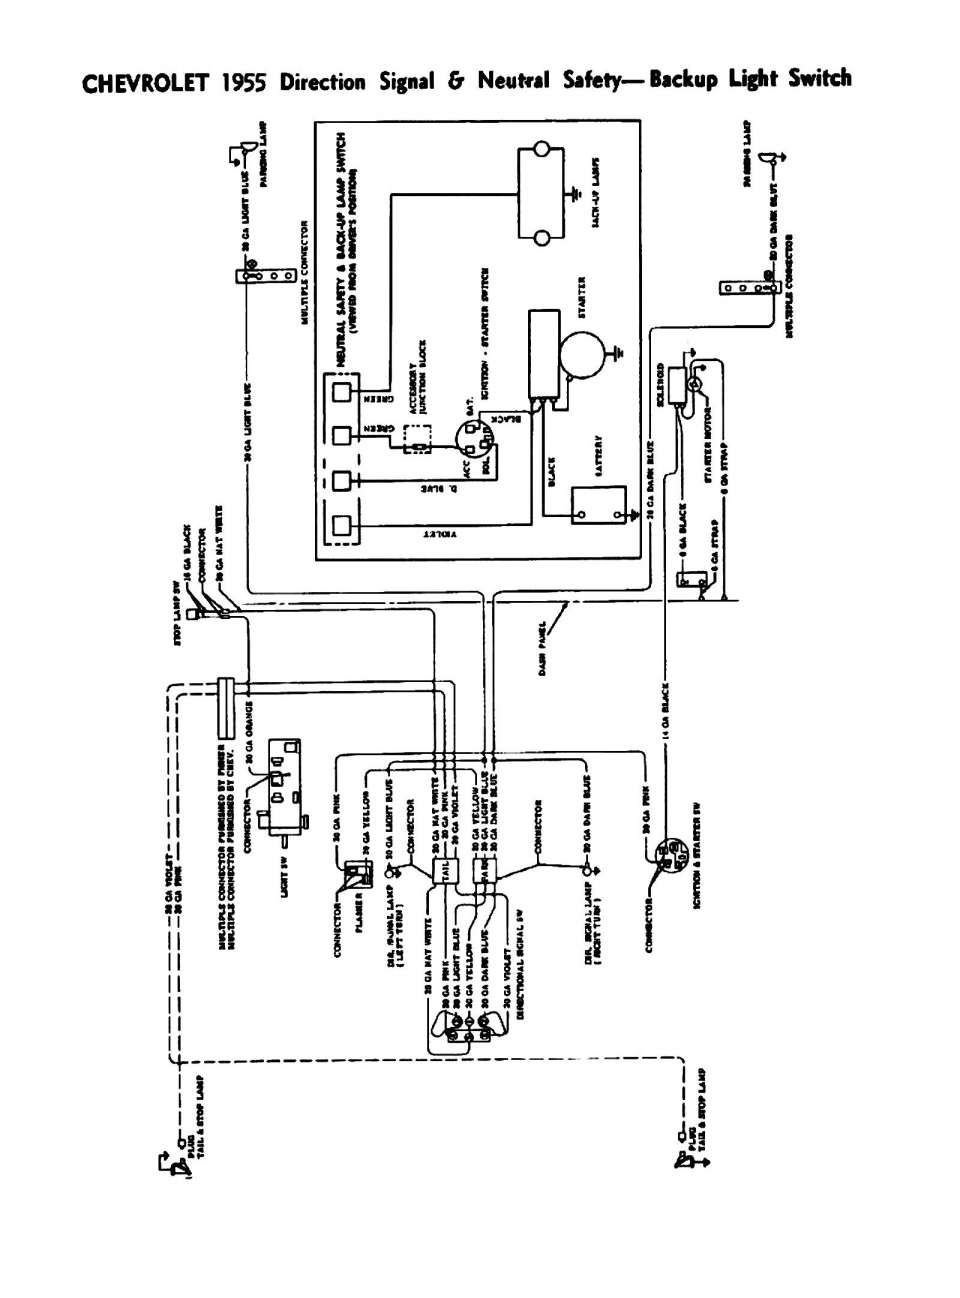 16+ 1957 Chevy Truck Ignition Switch Wiring Diagram